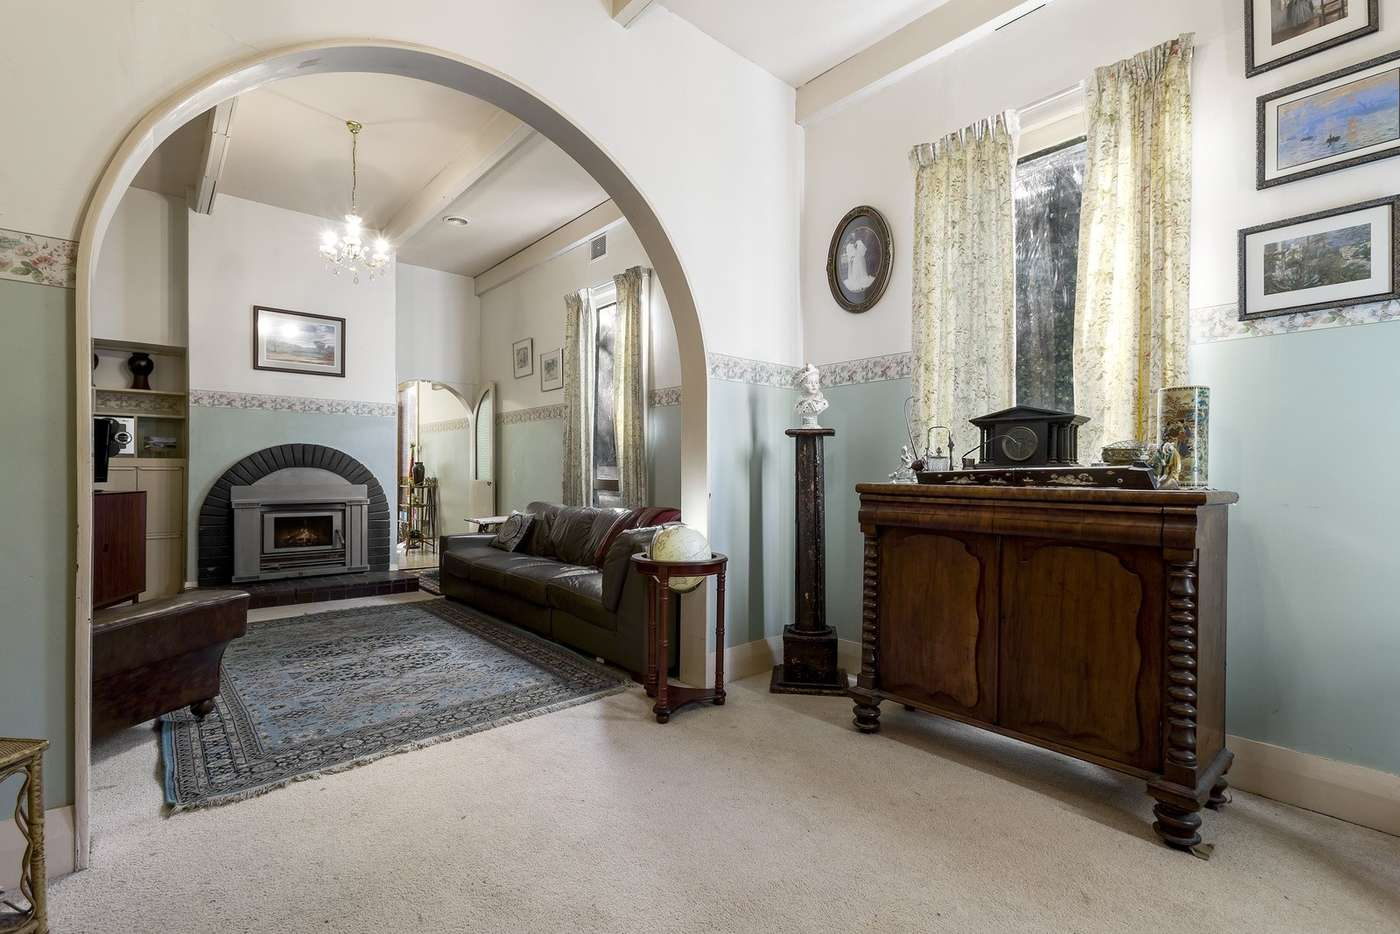 Fifth view of Homely house listing, 155 Hearn Street, Colac VIC 3250